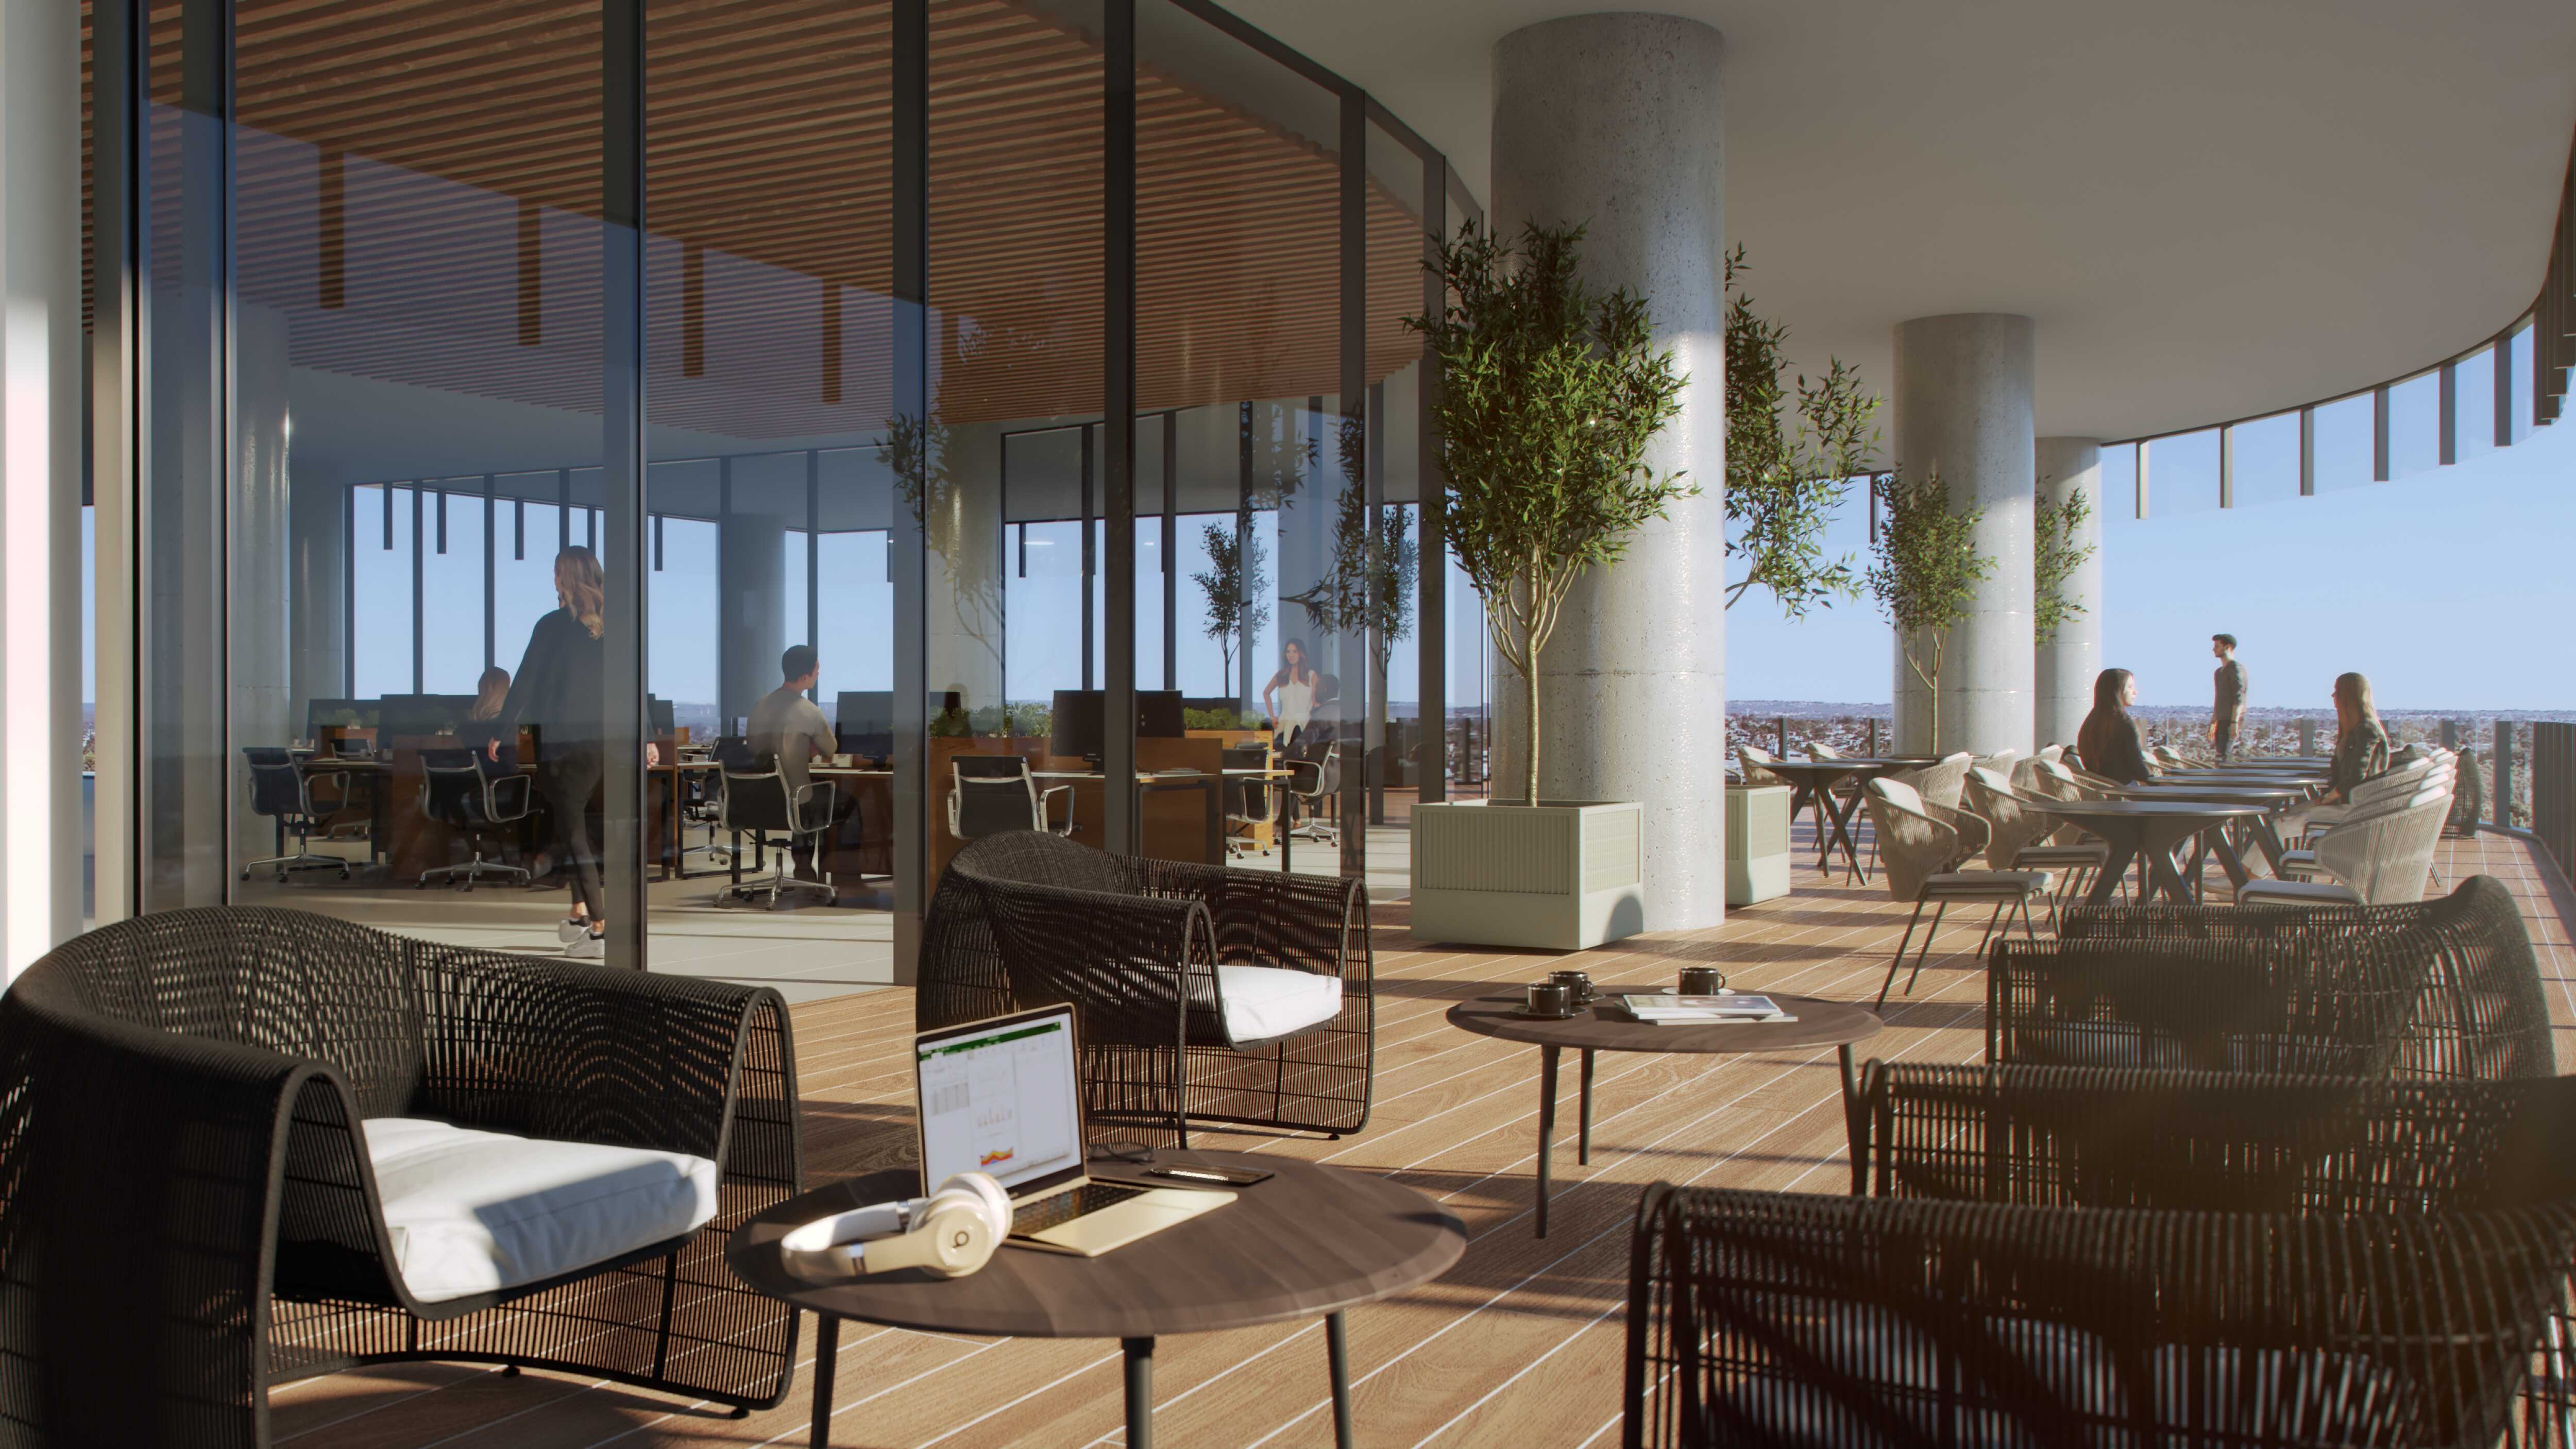 Commercial Property Amenity Render